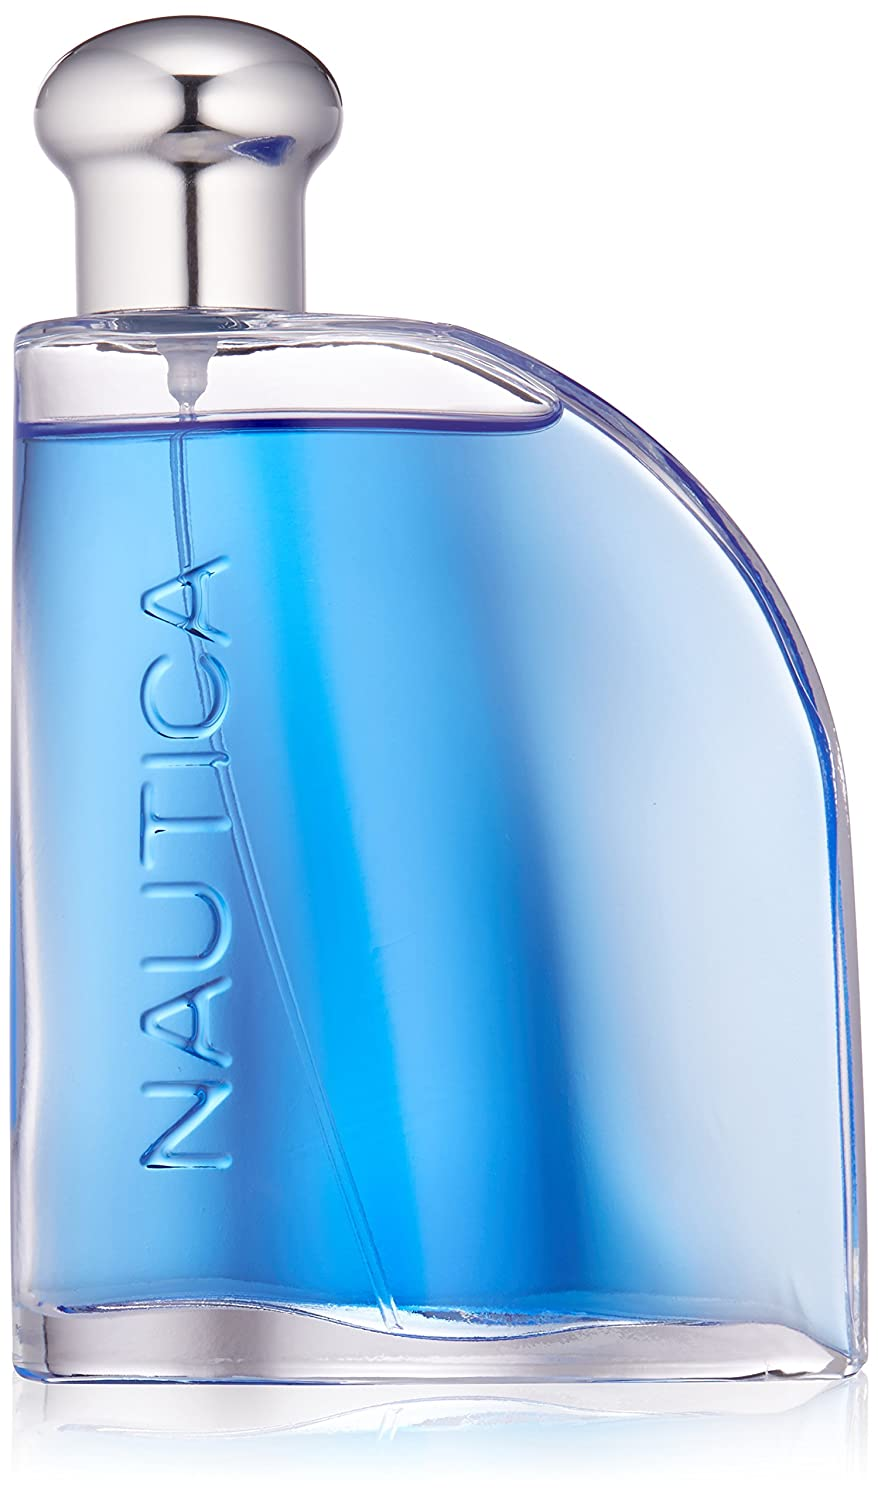 Nautica Blue Eau De Toilette Spray for Men, 3.4 fluid ounce